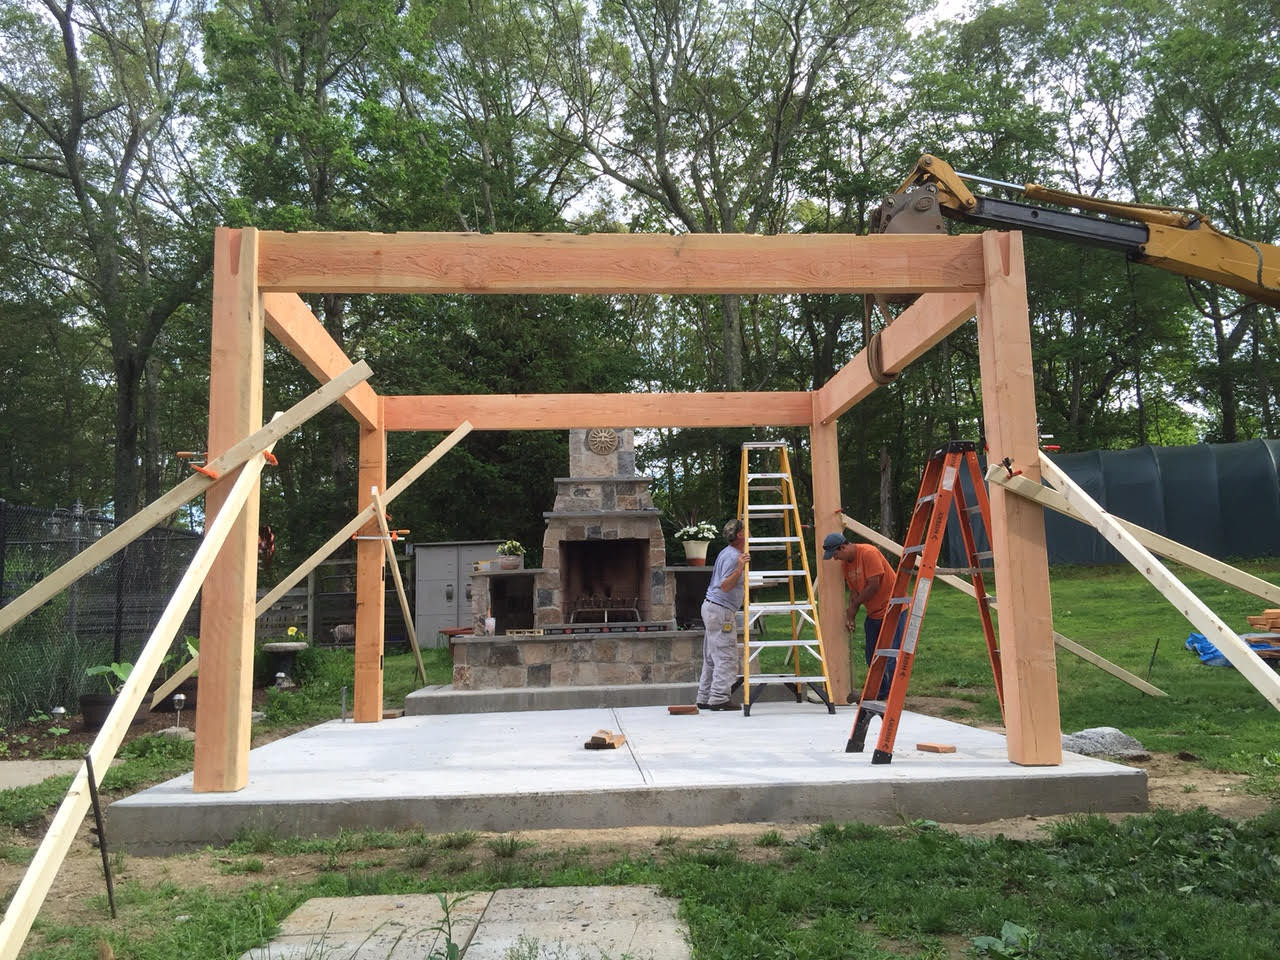 Best ideas about DIY Timber Frame Plans . Save or Pin Before & After DIY Pergola Kit for Rhode Island Fireplace Now.